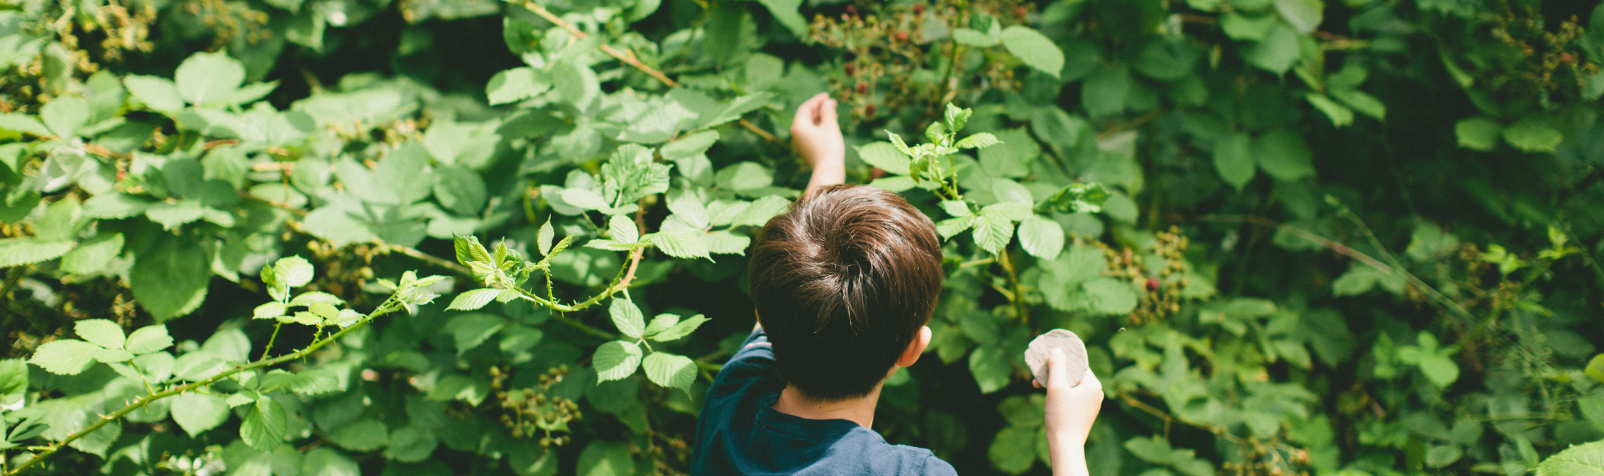 Boy picking leaves from a bush